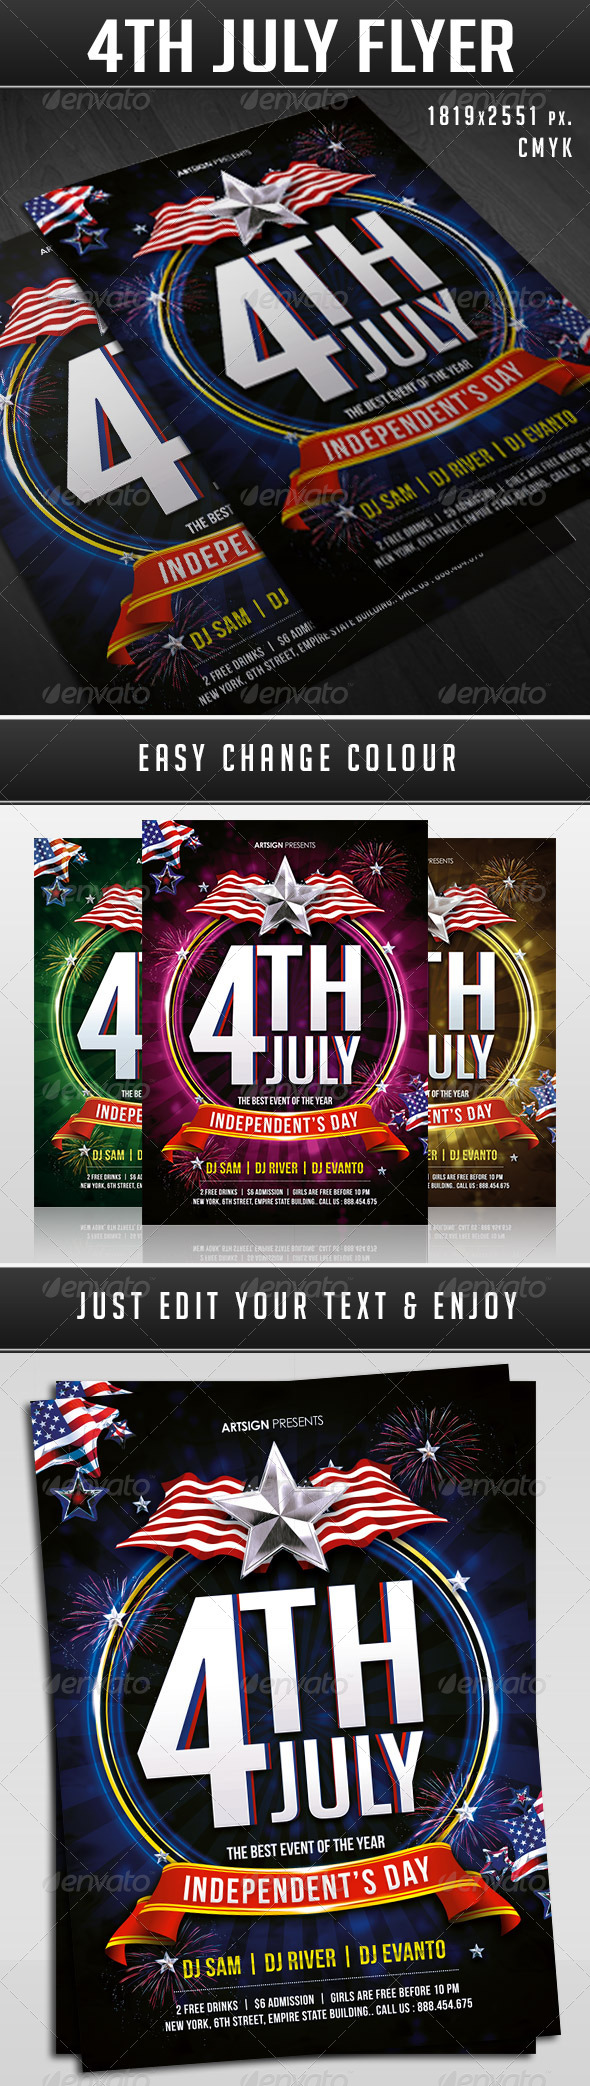 GraphicRiver 4th July Indepedent Day Flyer 8003378